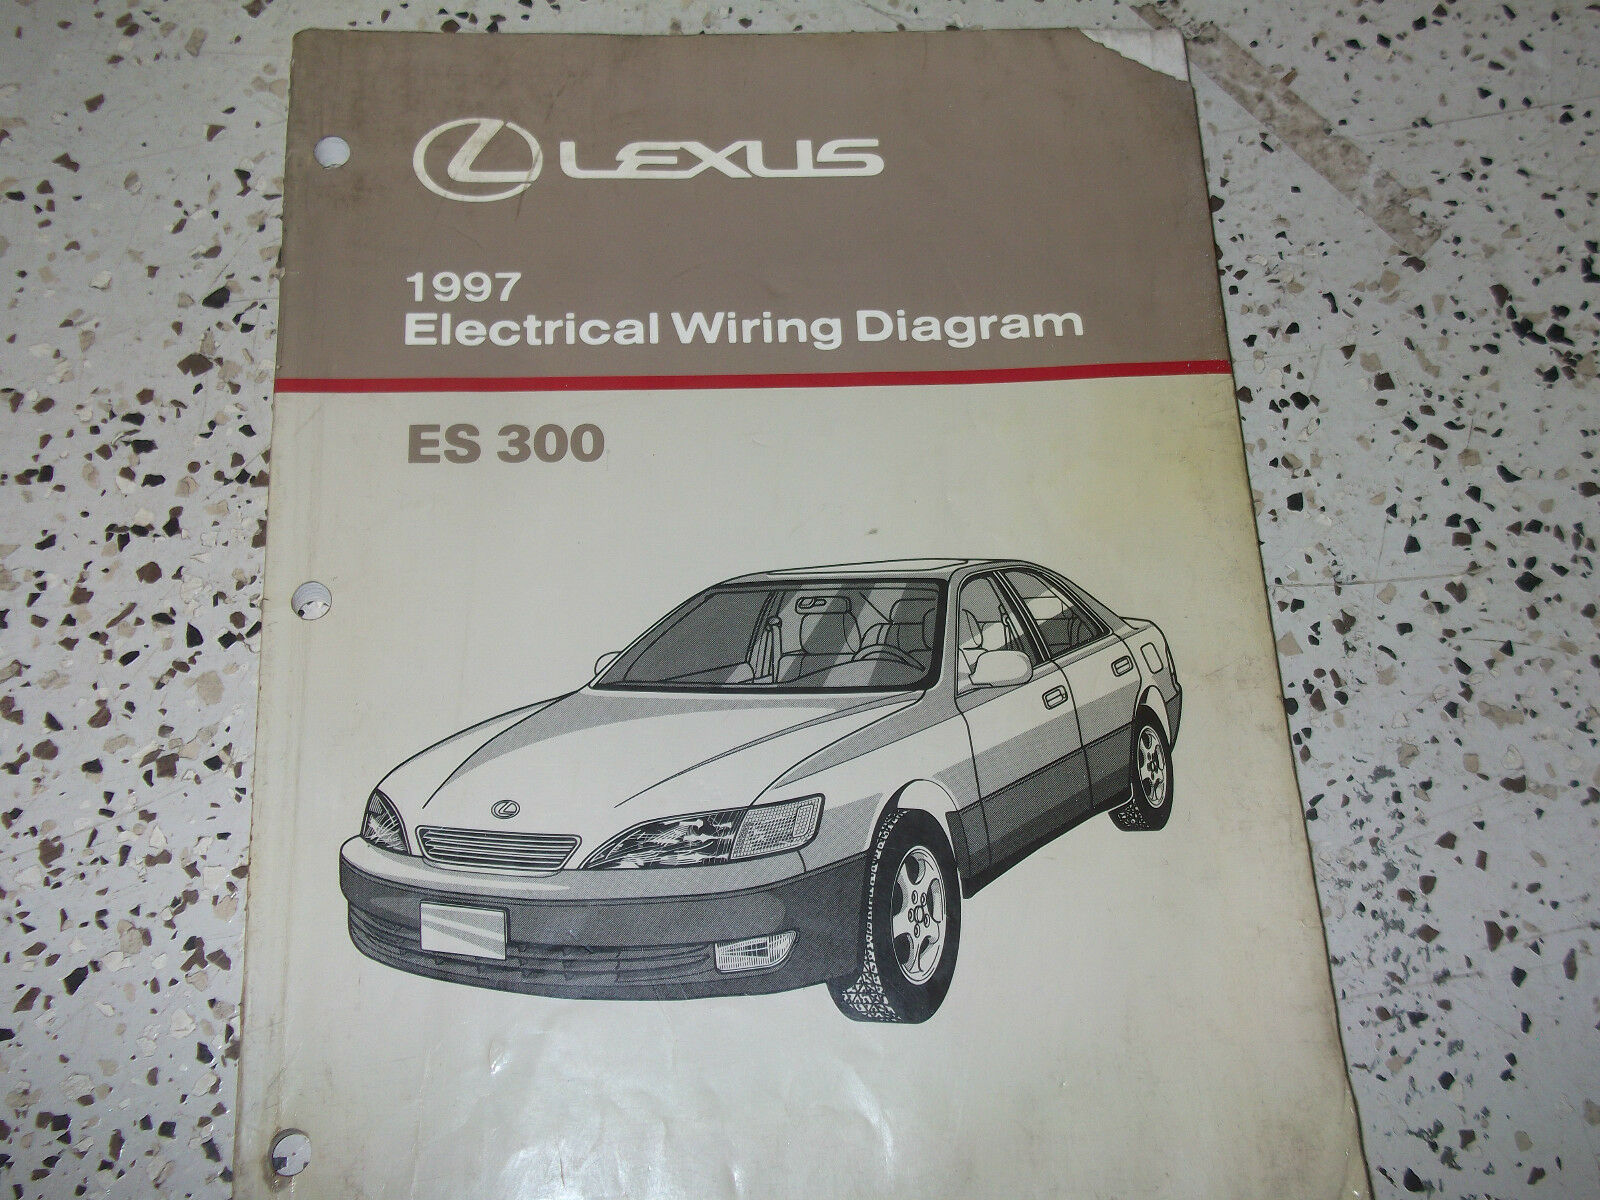 1997 LEXUS ES300 ES 300 Electrical Wiring Diagram Service Shop Repair Manual  EWD 1 of 3Only 2 available ...